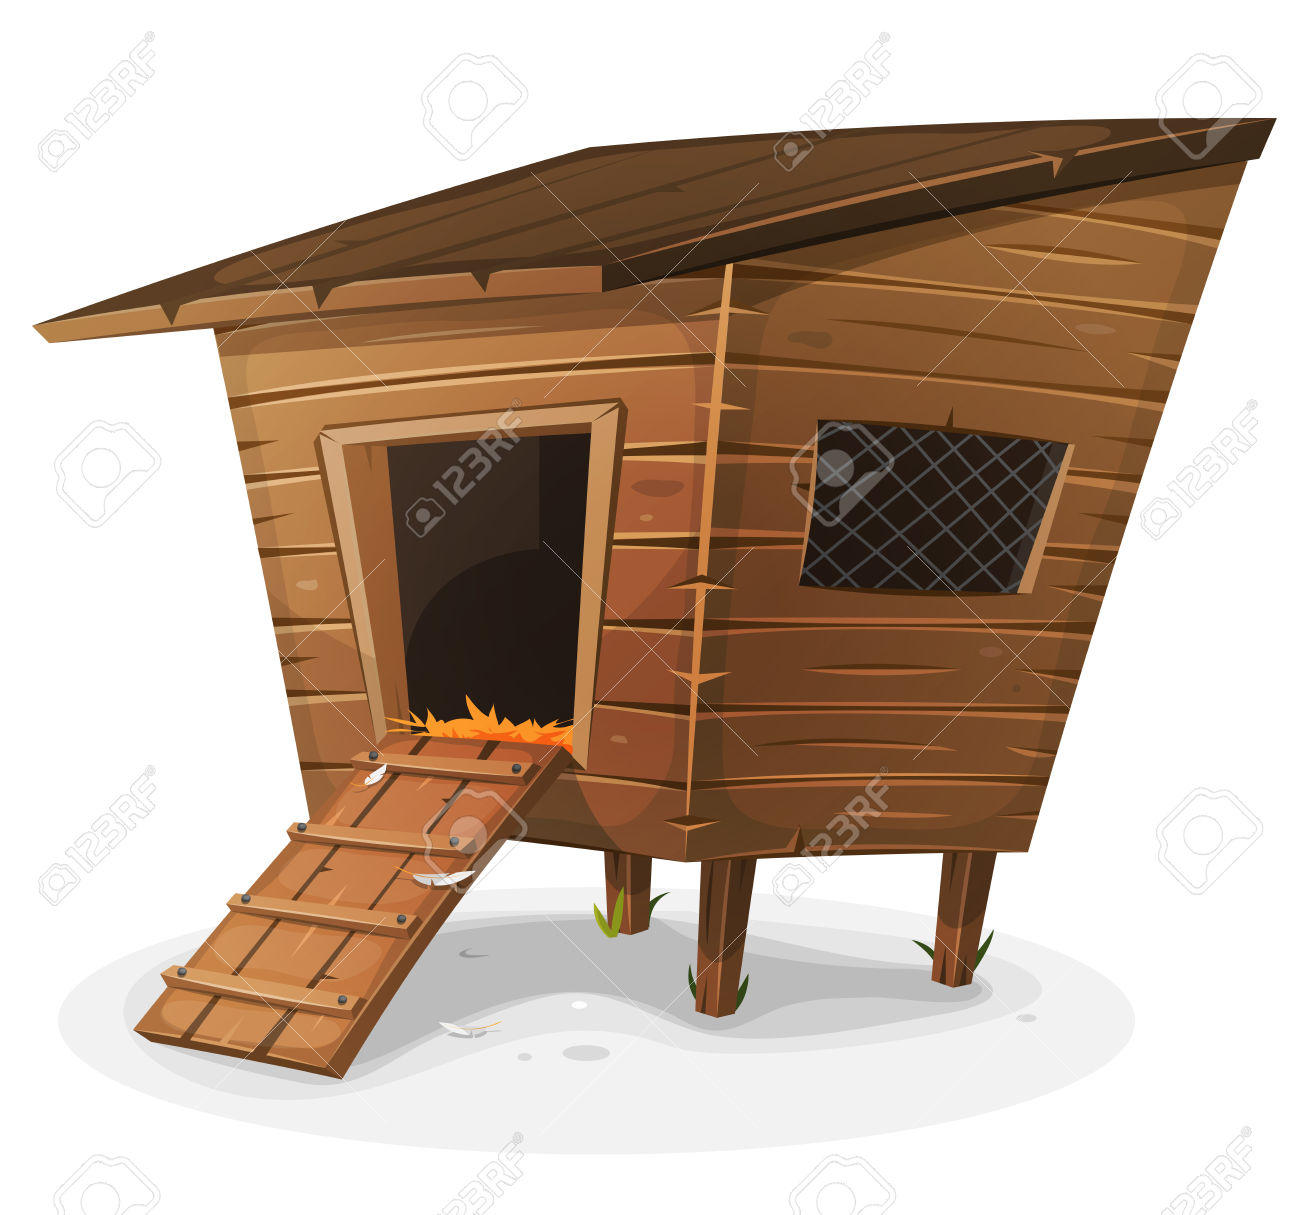 Illustration Of A Cartoon Wooden Farm Chicken Coop, With Entrance.